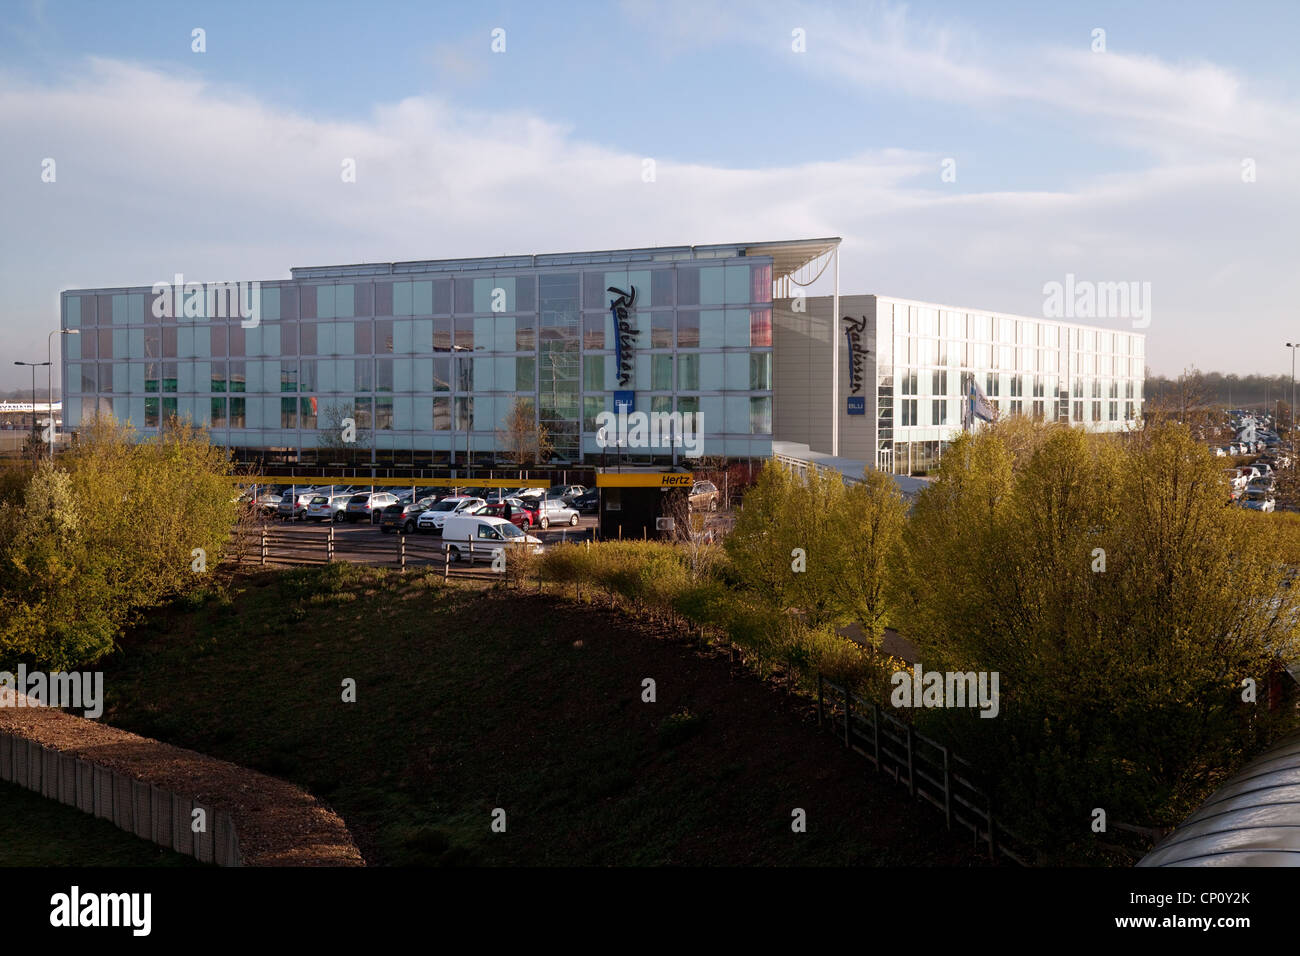 Radisson Blu Hotel, Stansted airport Essex UK - Stock Image